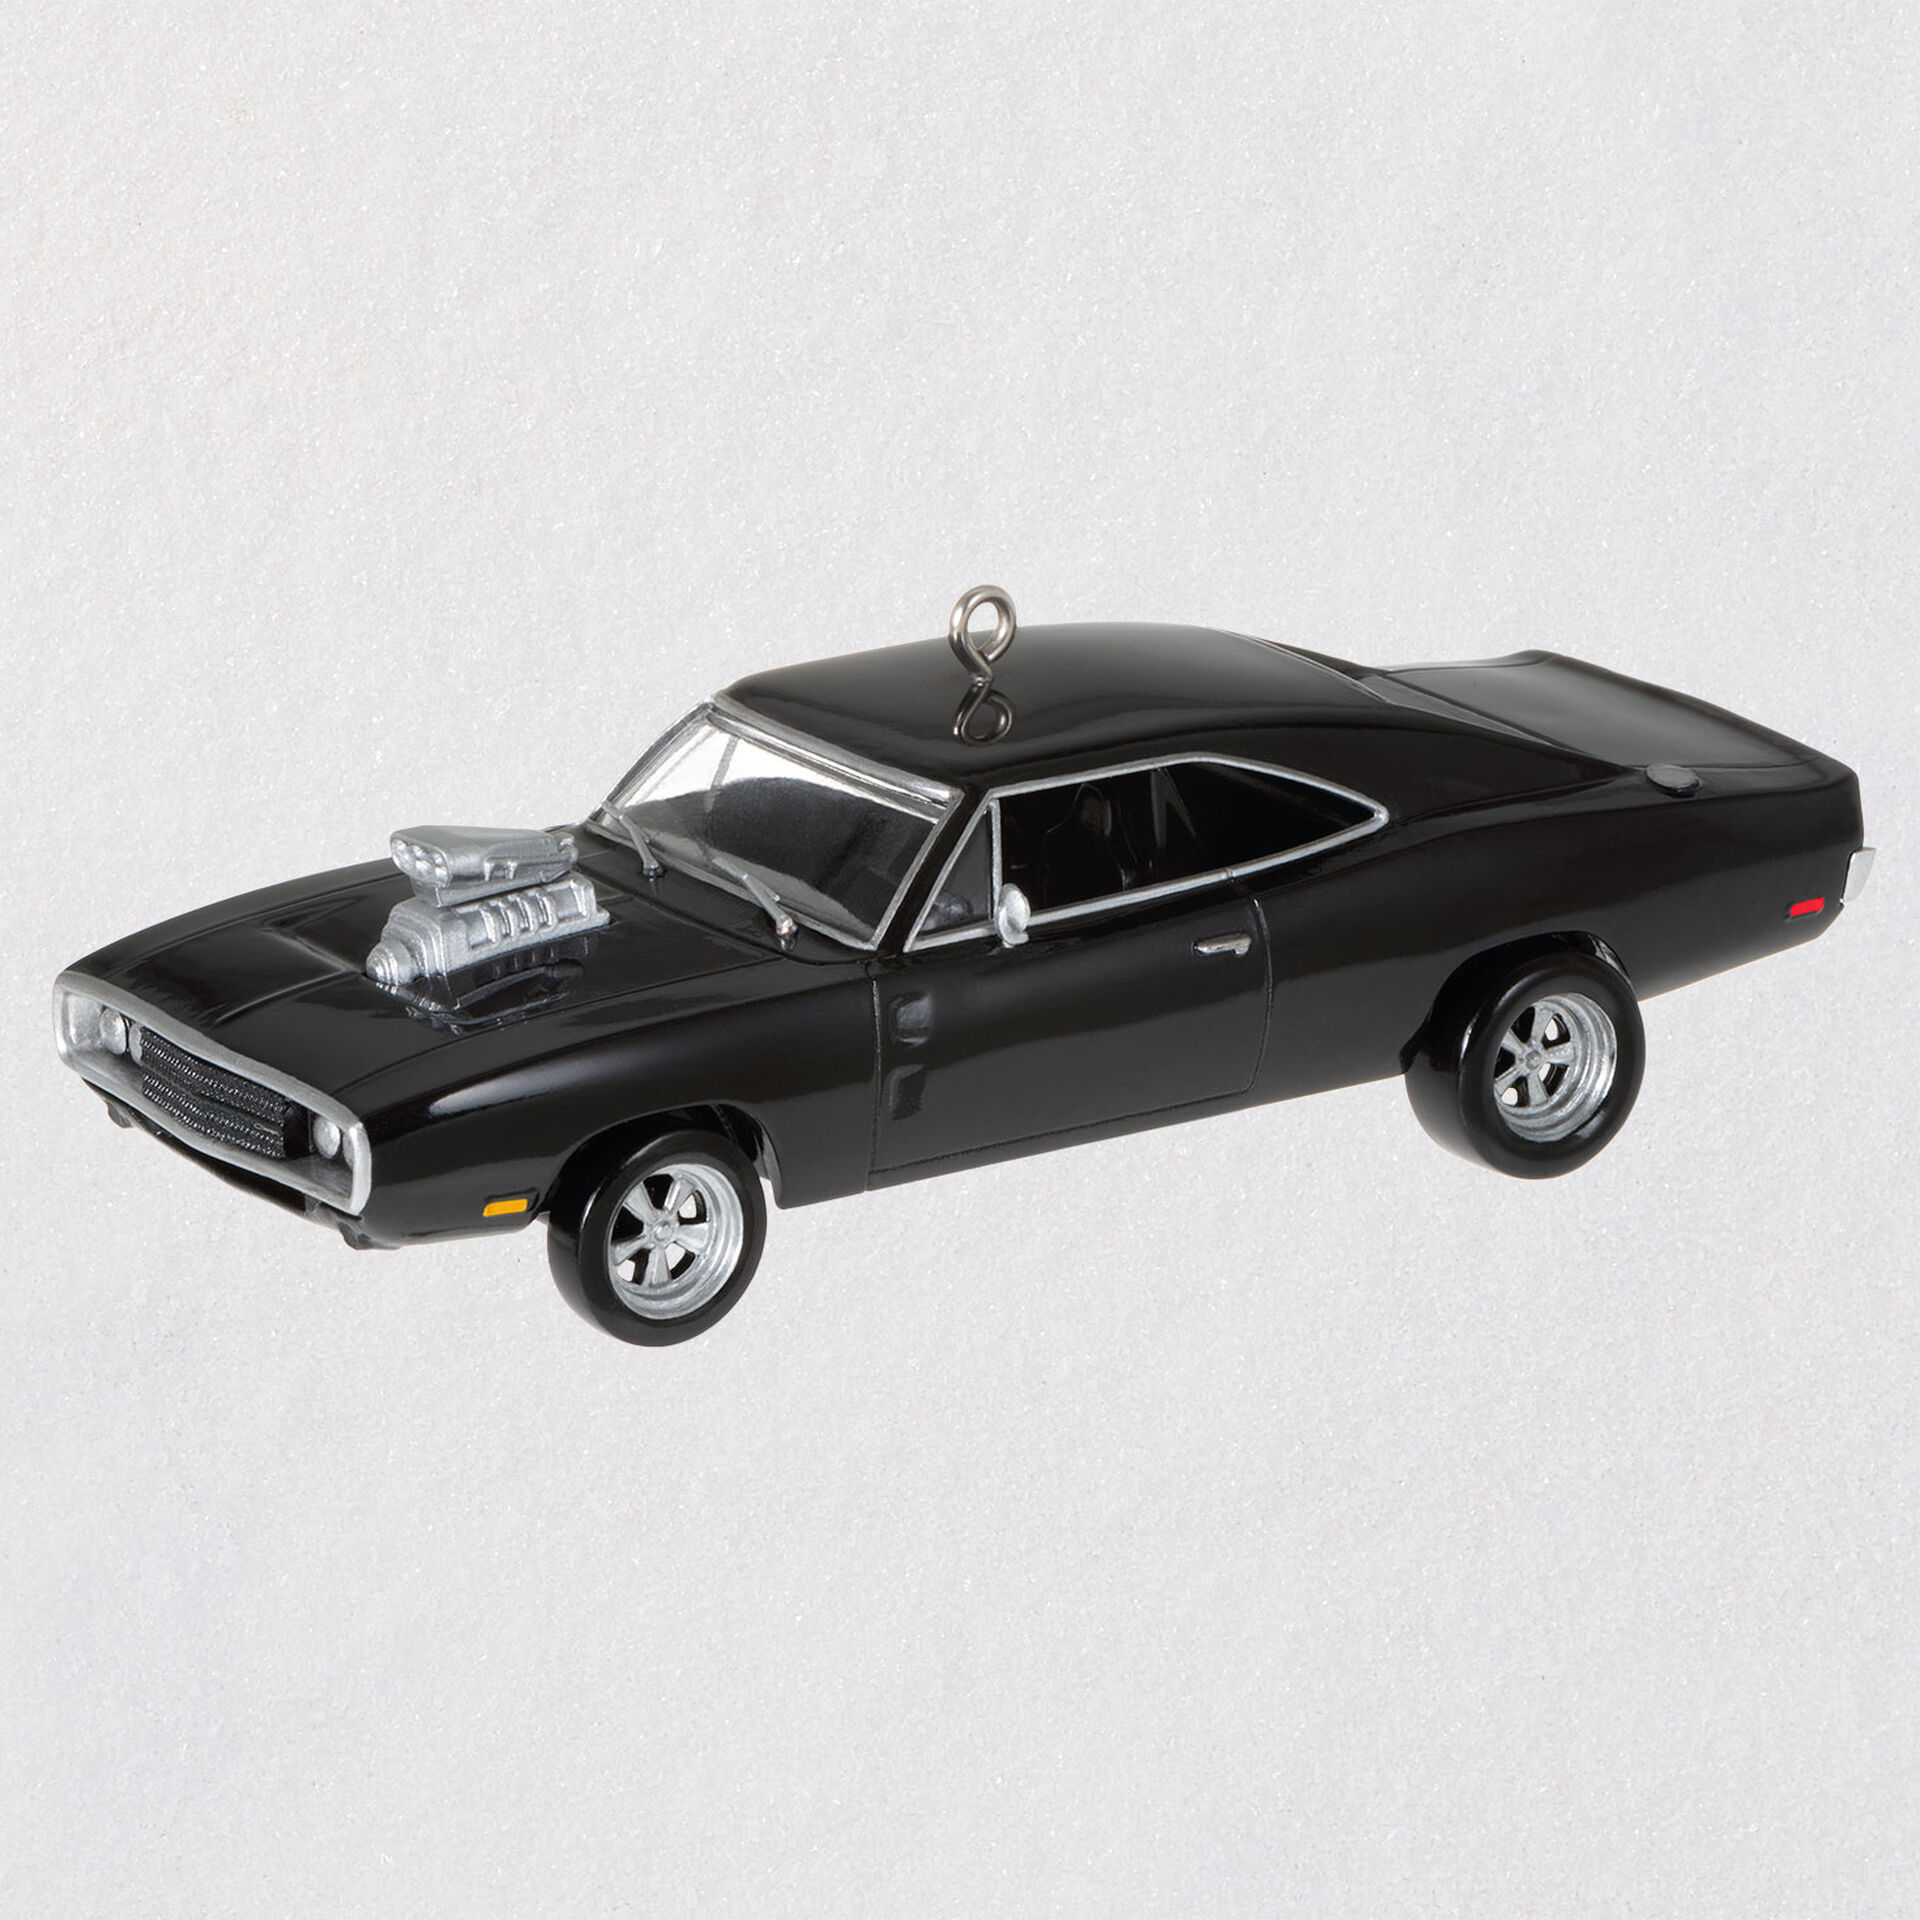 2021 Car's the Star #1 1970 Dodge Charger - Ships JULY 12